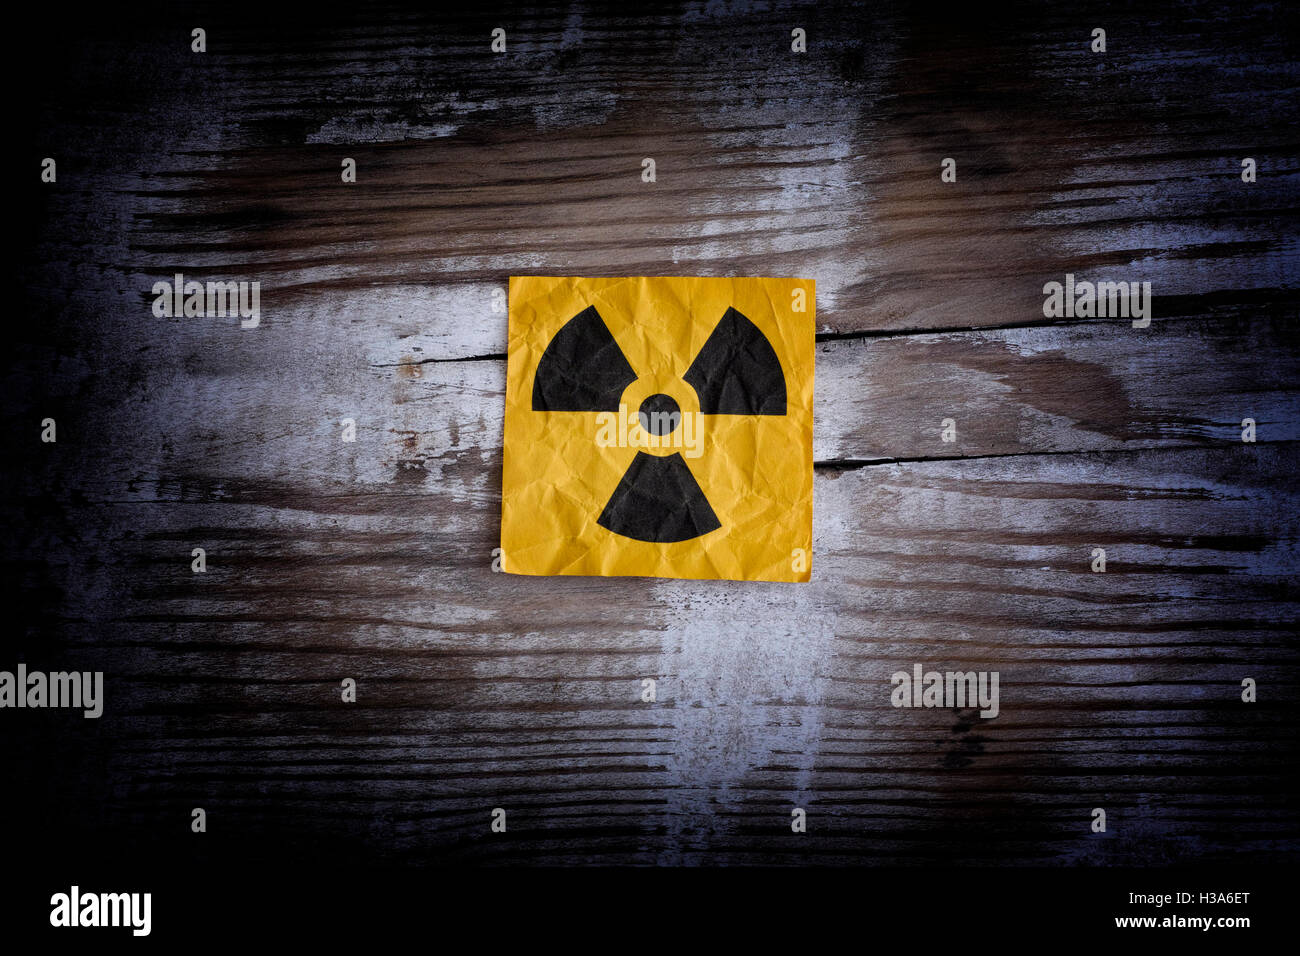 Radiation warning sign on a wooden surface. Close up. - Stock Image